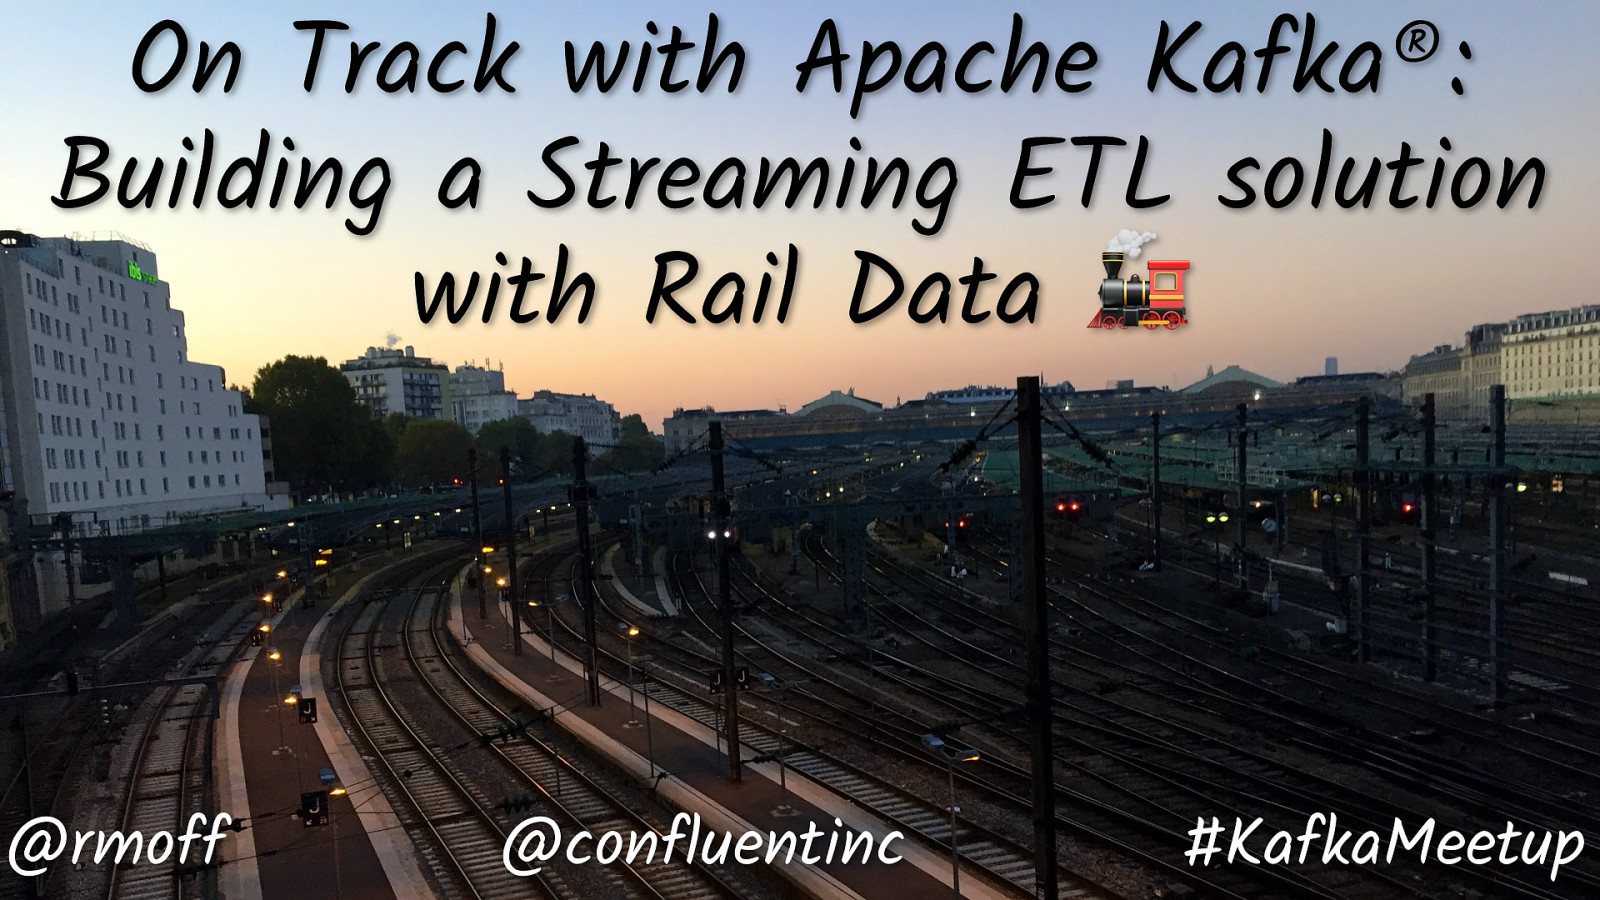 🚂 On Track with Apache Kafka: Building a Streaming ETL solution with Rail Data